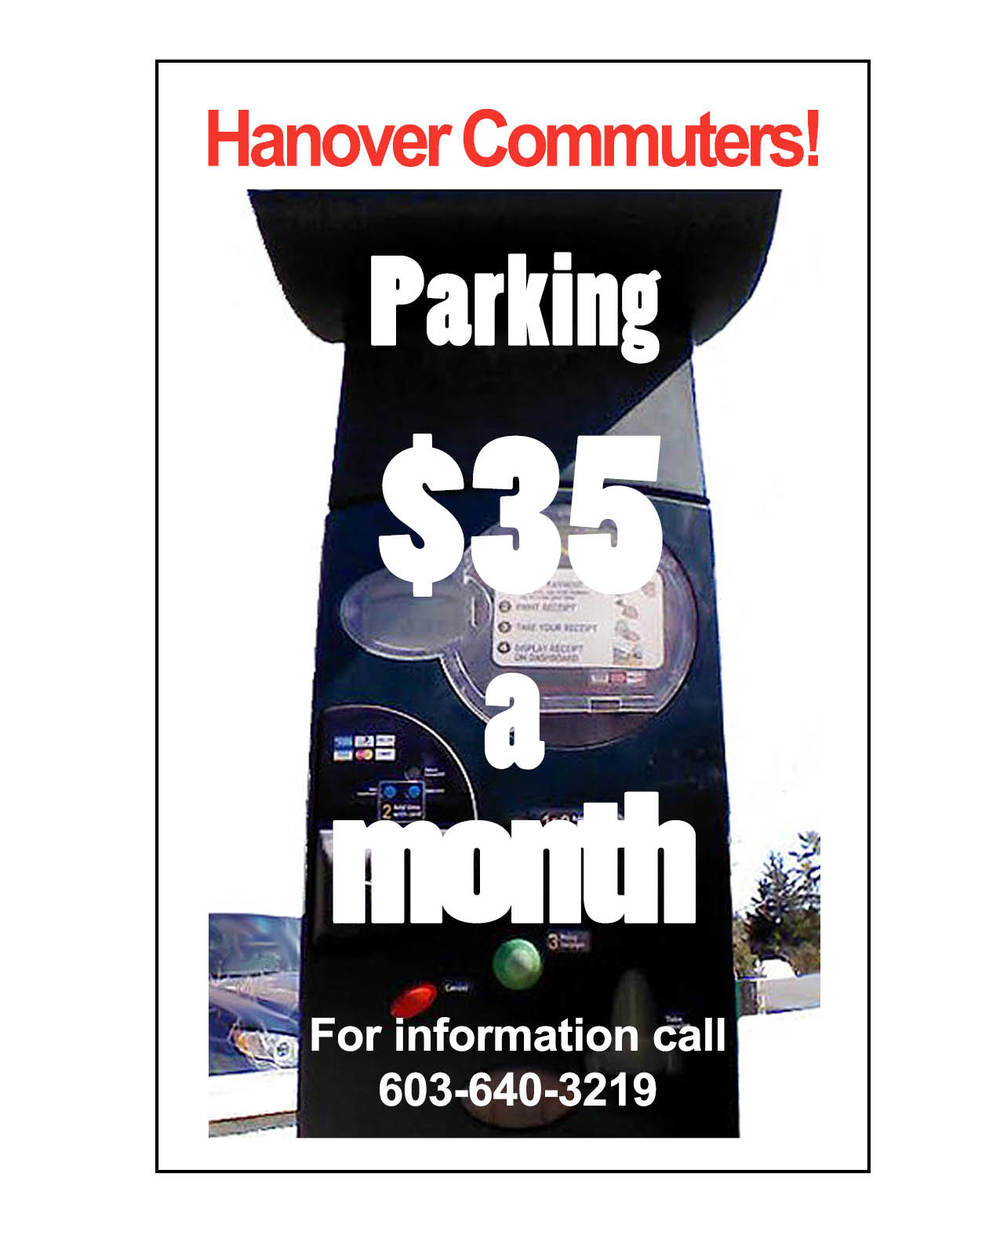 Hanover Commuters - Special!